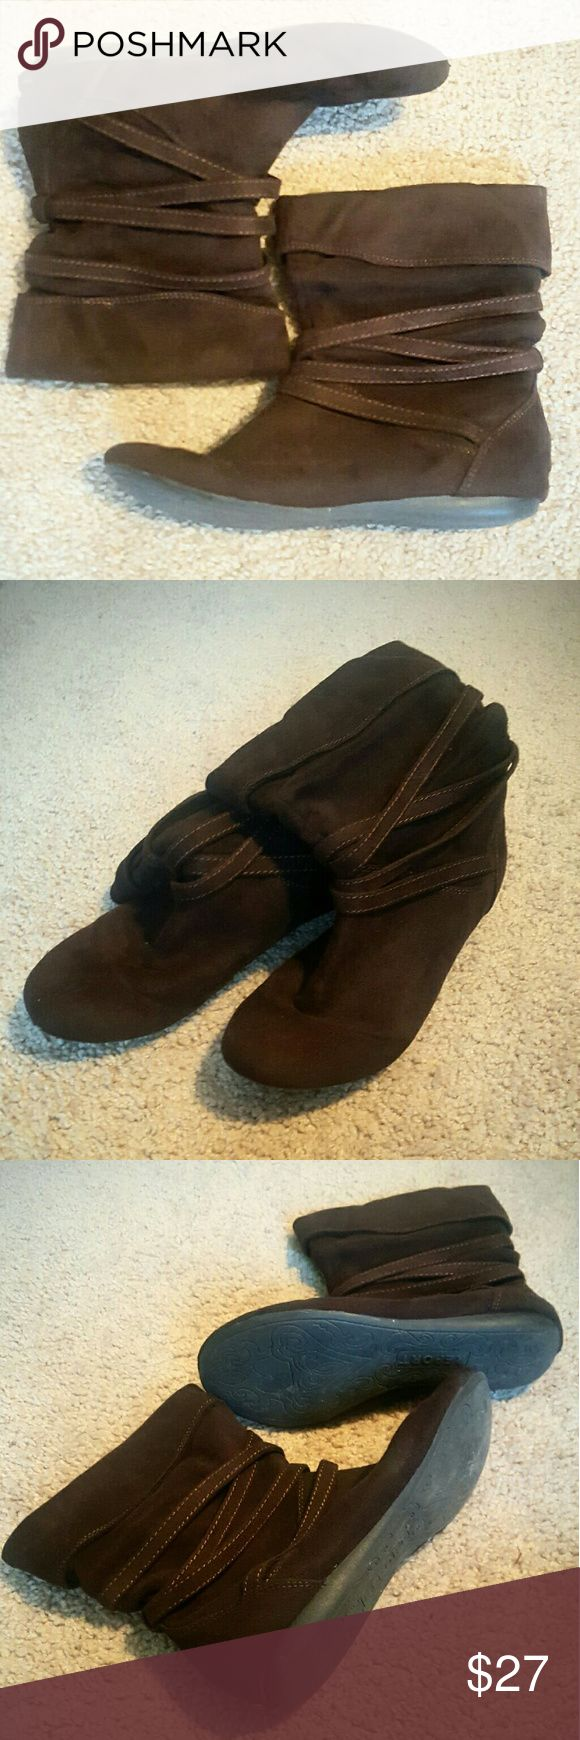 Booties Chocolate brown suede. Rubber sole makes these booties very comfortable. Gently worn, still in great condition Report Shoes Ankle Boots & Booties